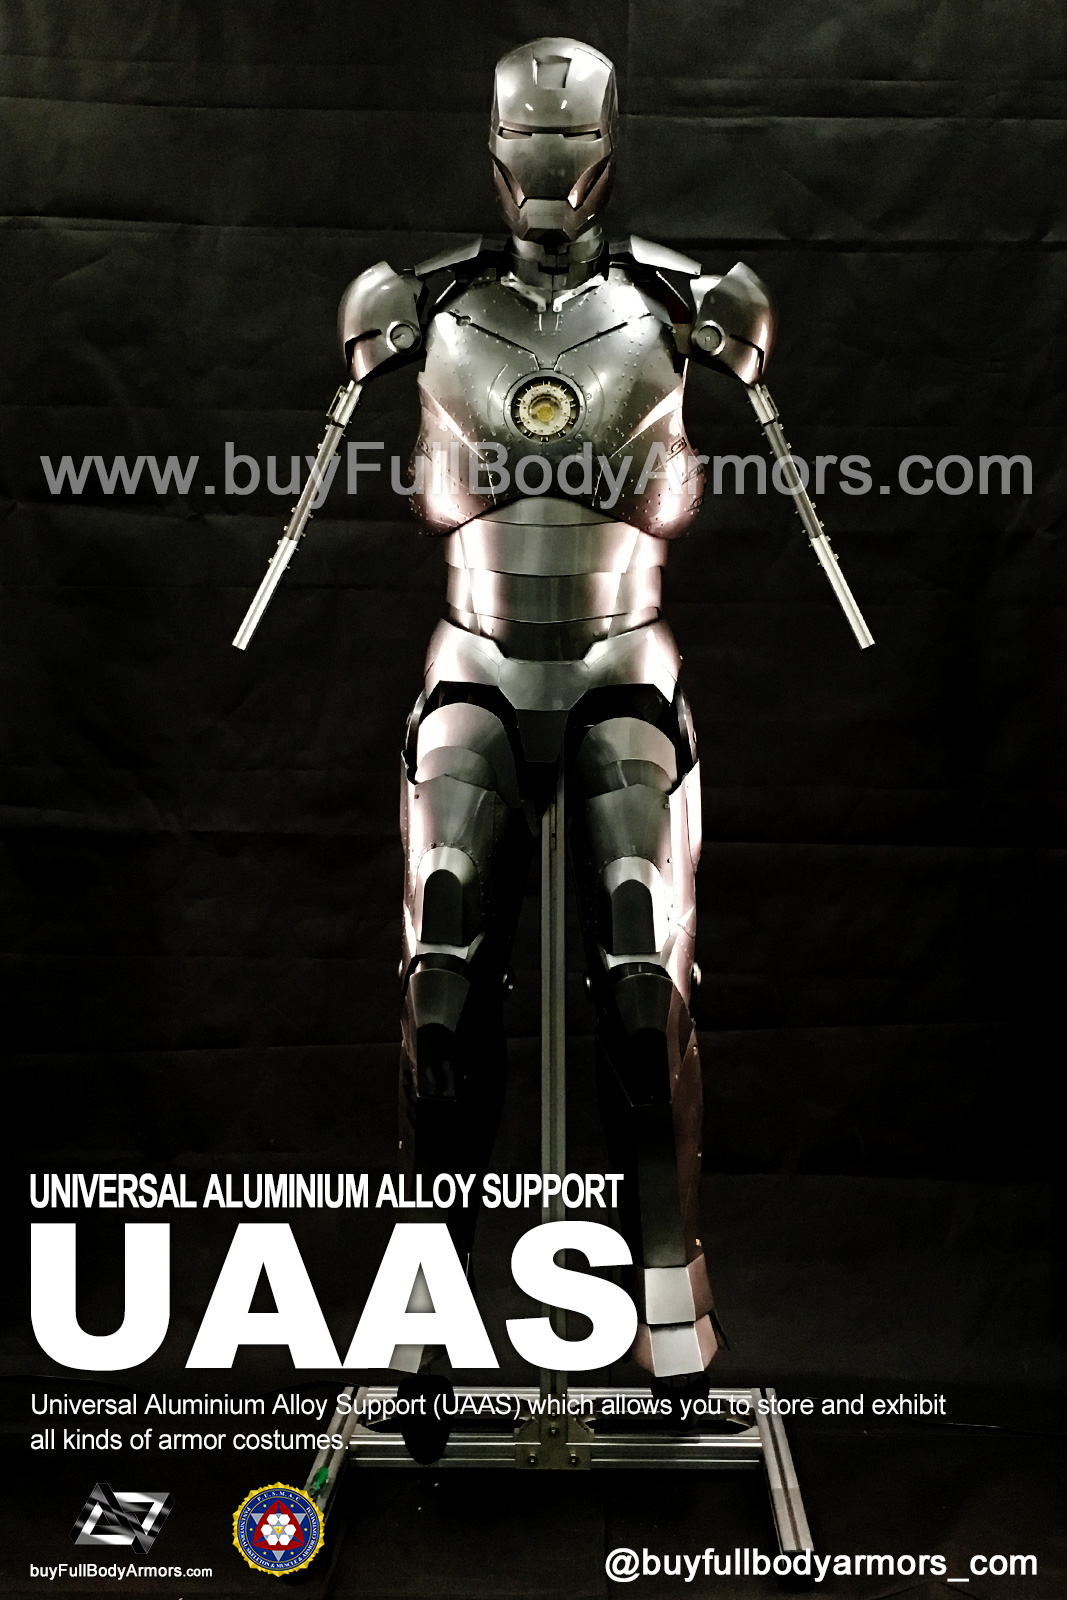 Put a Iron Man Mark II 2 Armor Costume on to a Universal Aluminium Alloy Support (UAAS) 4